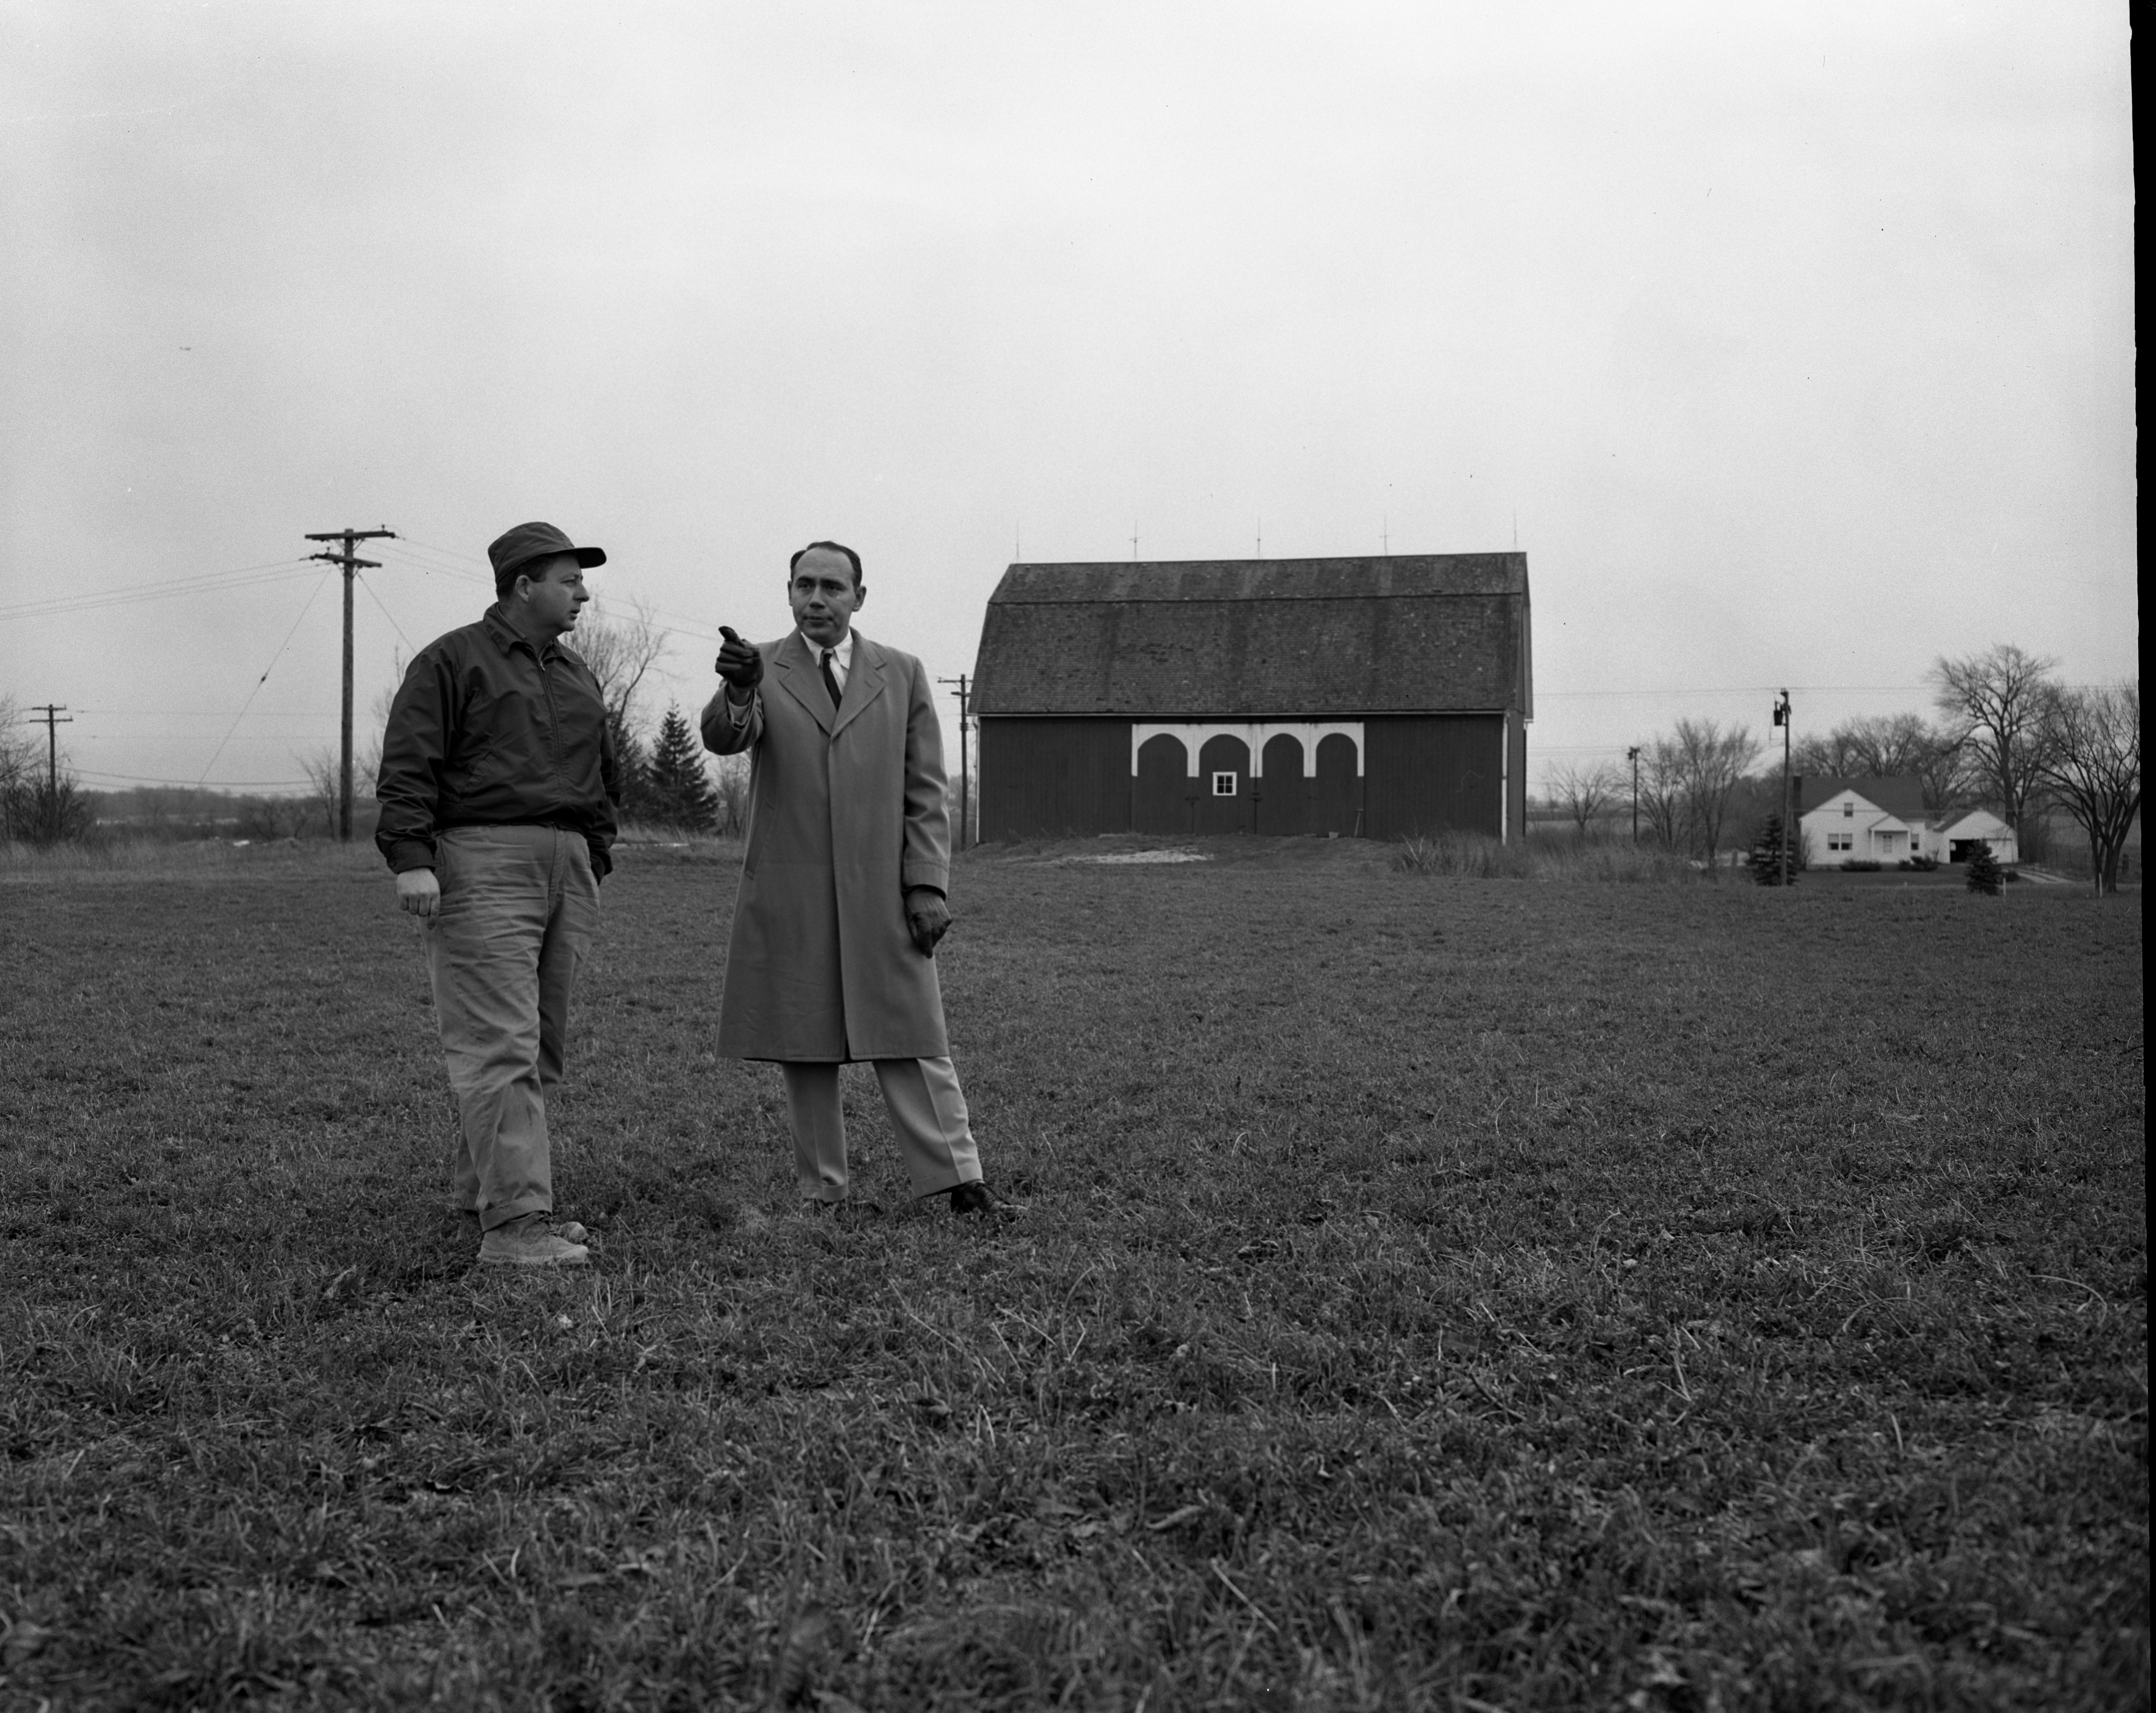 Rev. Richard H. Miller and George Frisinger at Site for New Presbyterian Church, November 1955 image